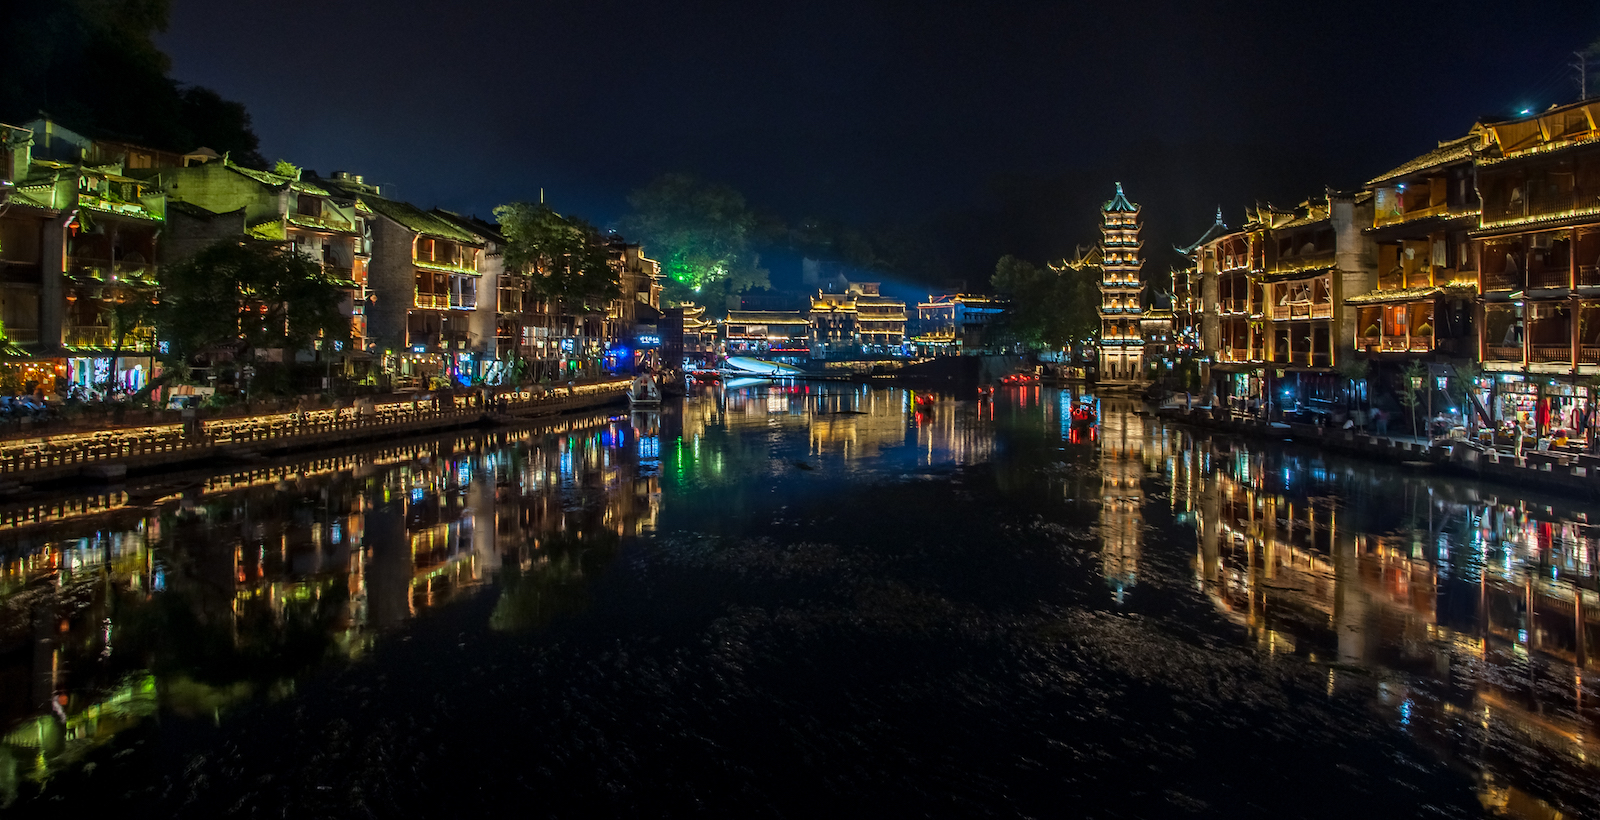 Ancient town of Fenghuang, China